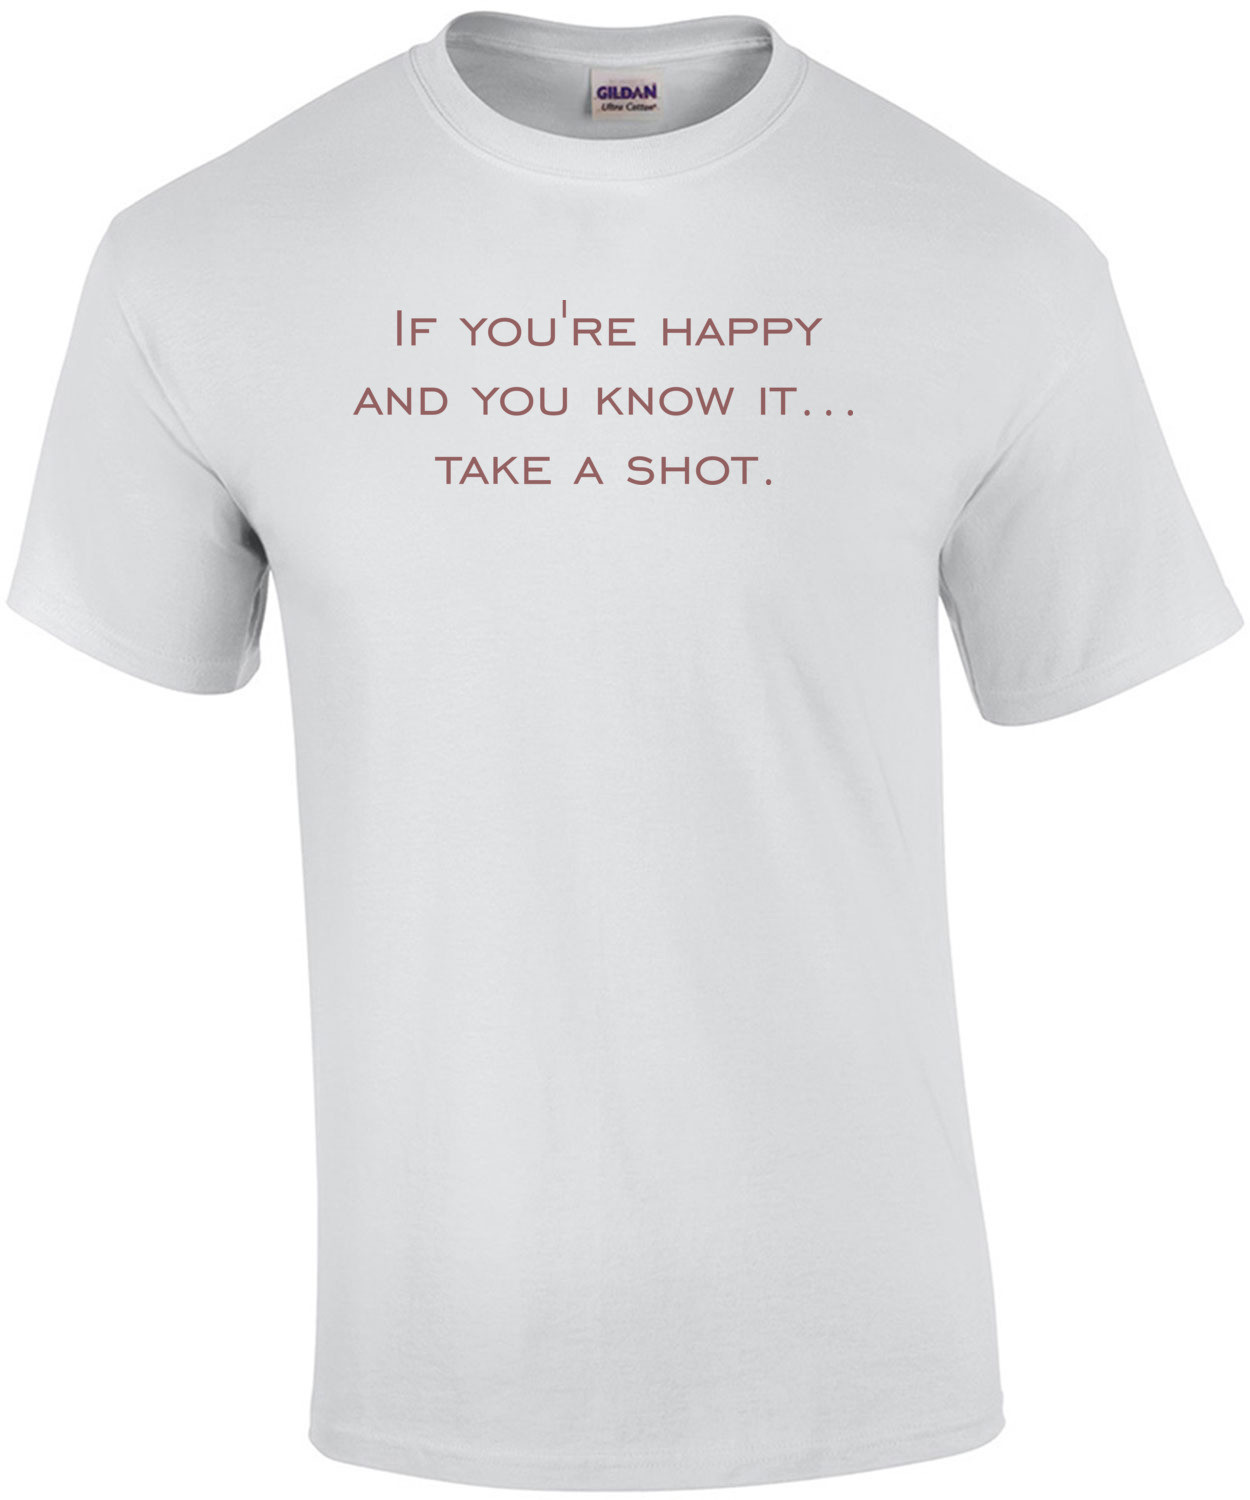 If you're happy and you know it... take a shot. 21 birthday Shirt